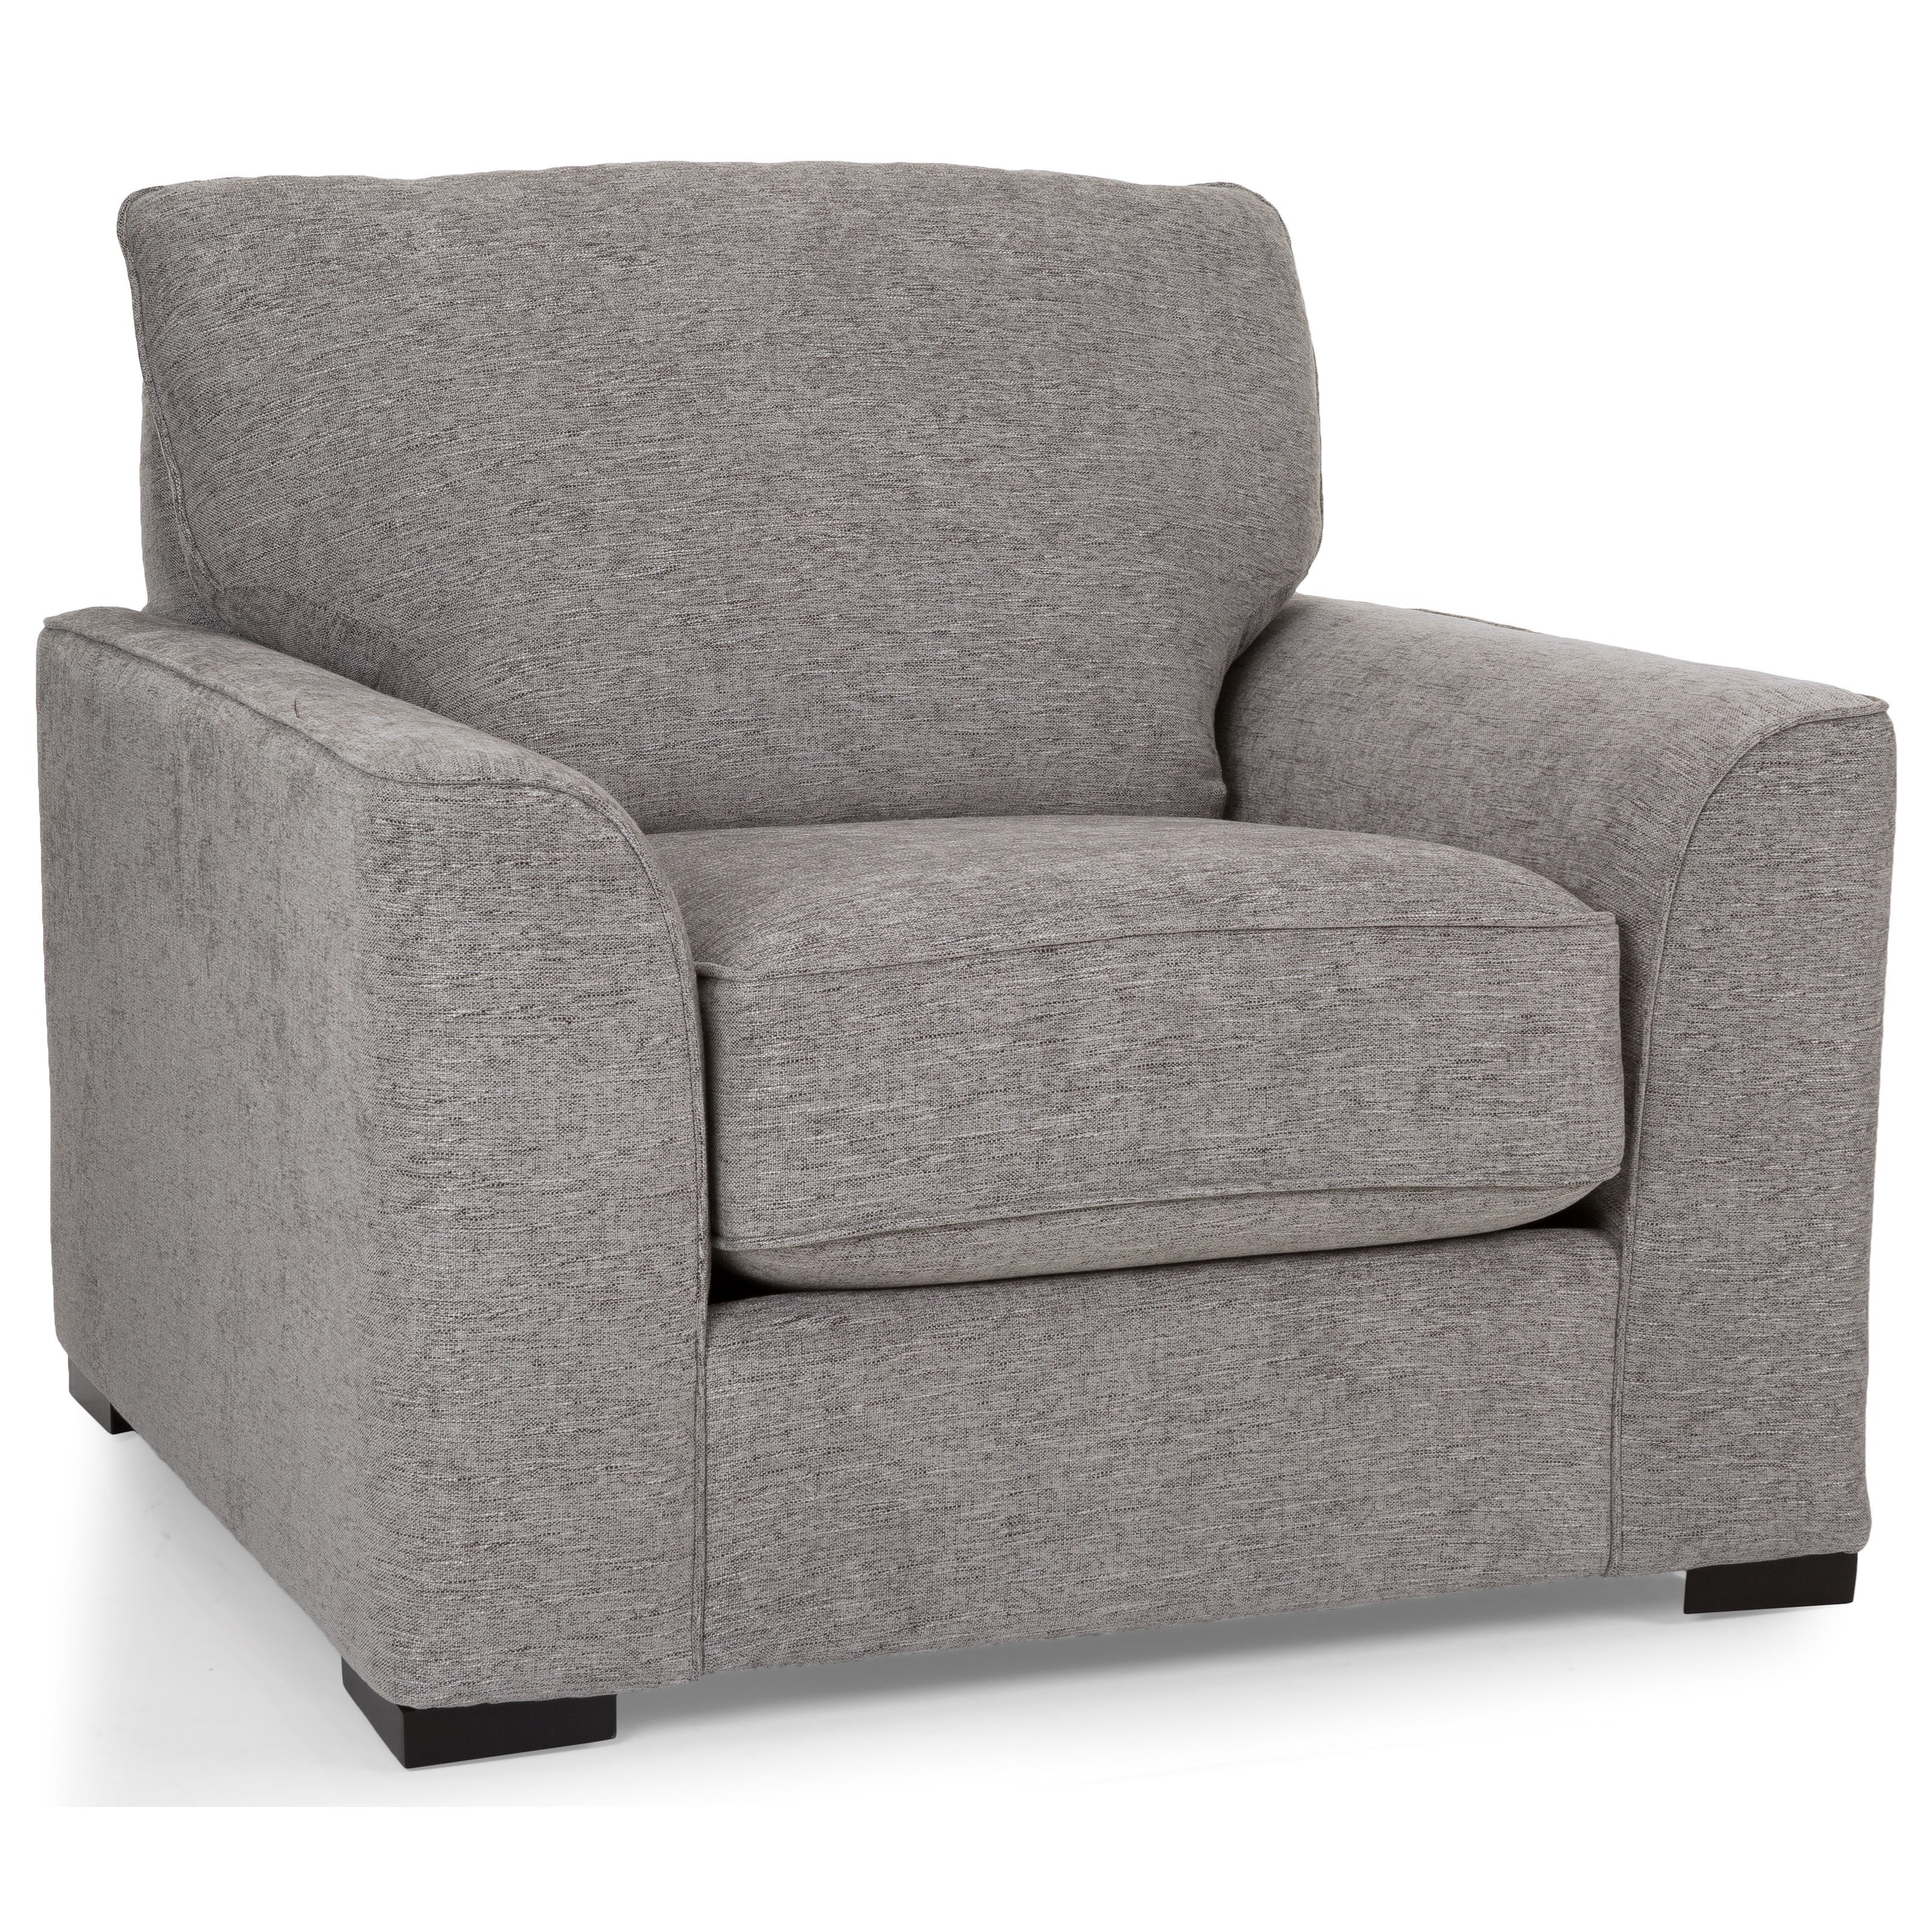 2786 Chair by Decor-Rest at Rooms for Less